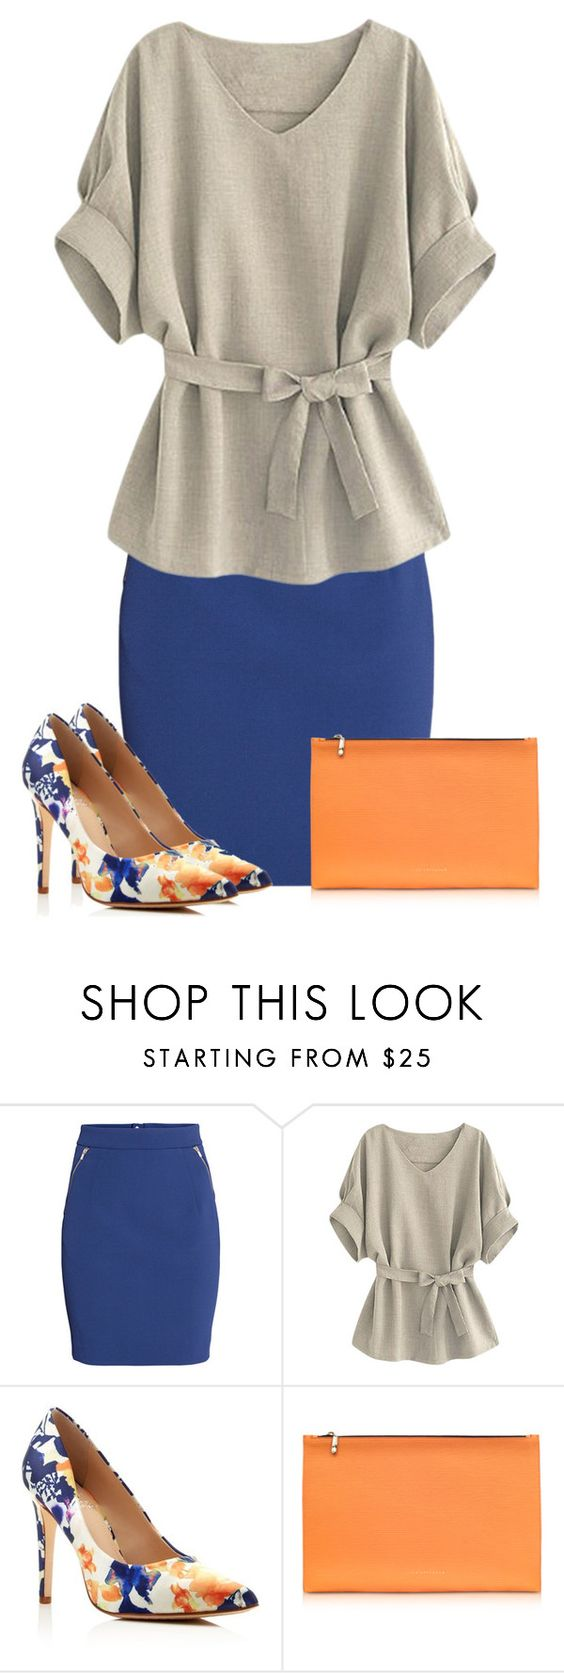 """""""Untitled #586"""" by dida-zalesakova ❤ liked on Polyvore featuring H&M, Vince Camuto and Victoria Beckham"""